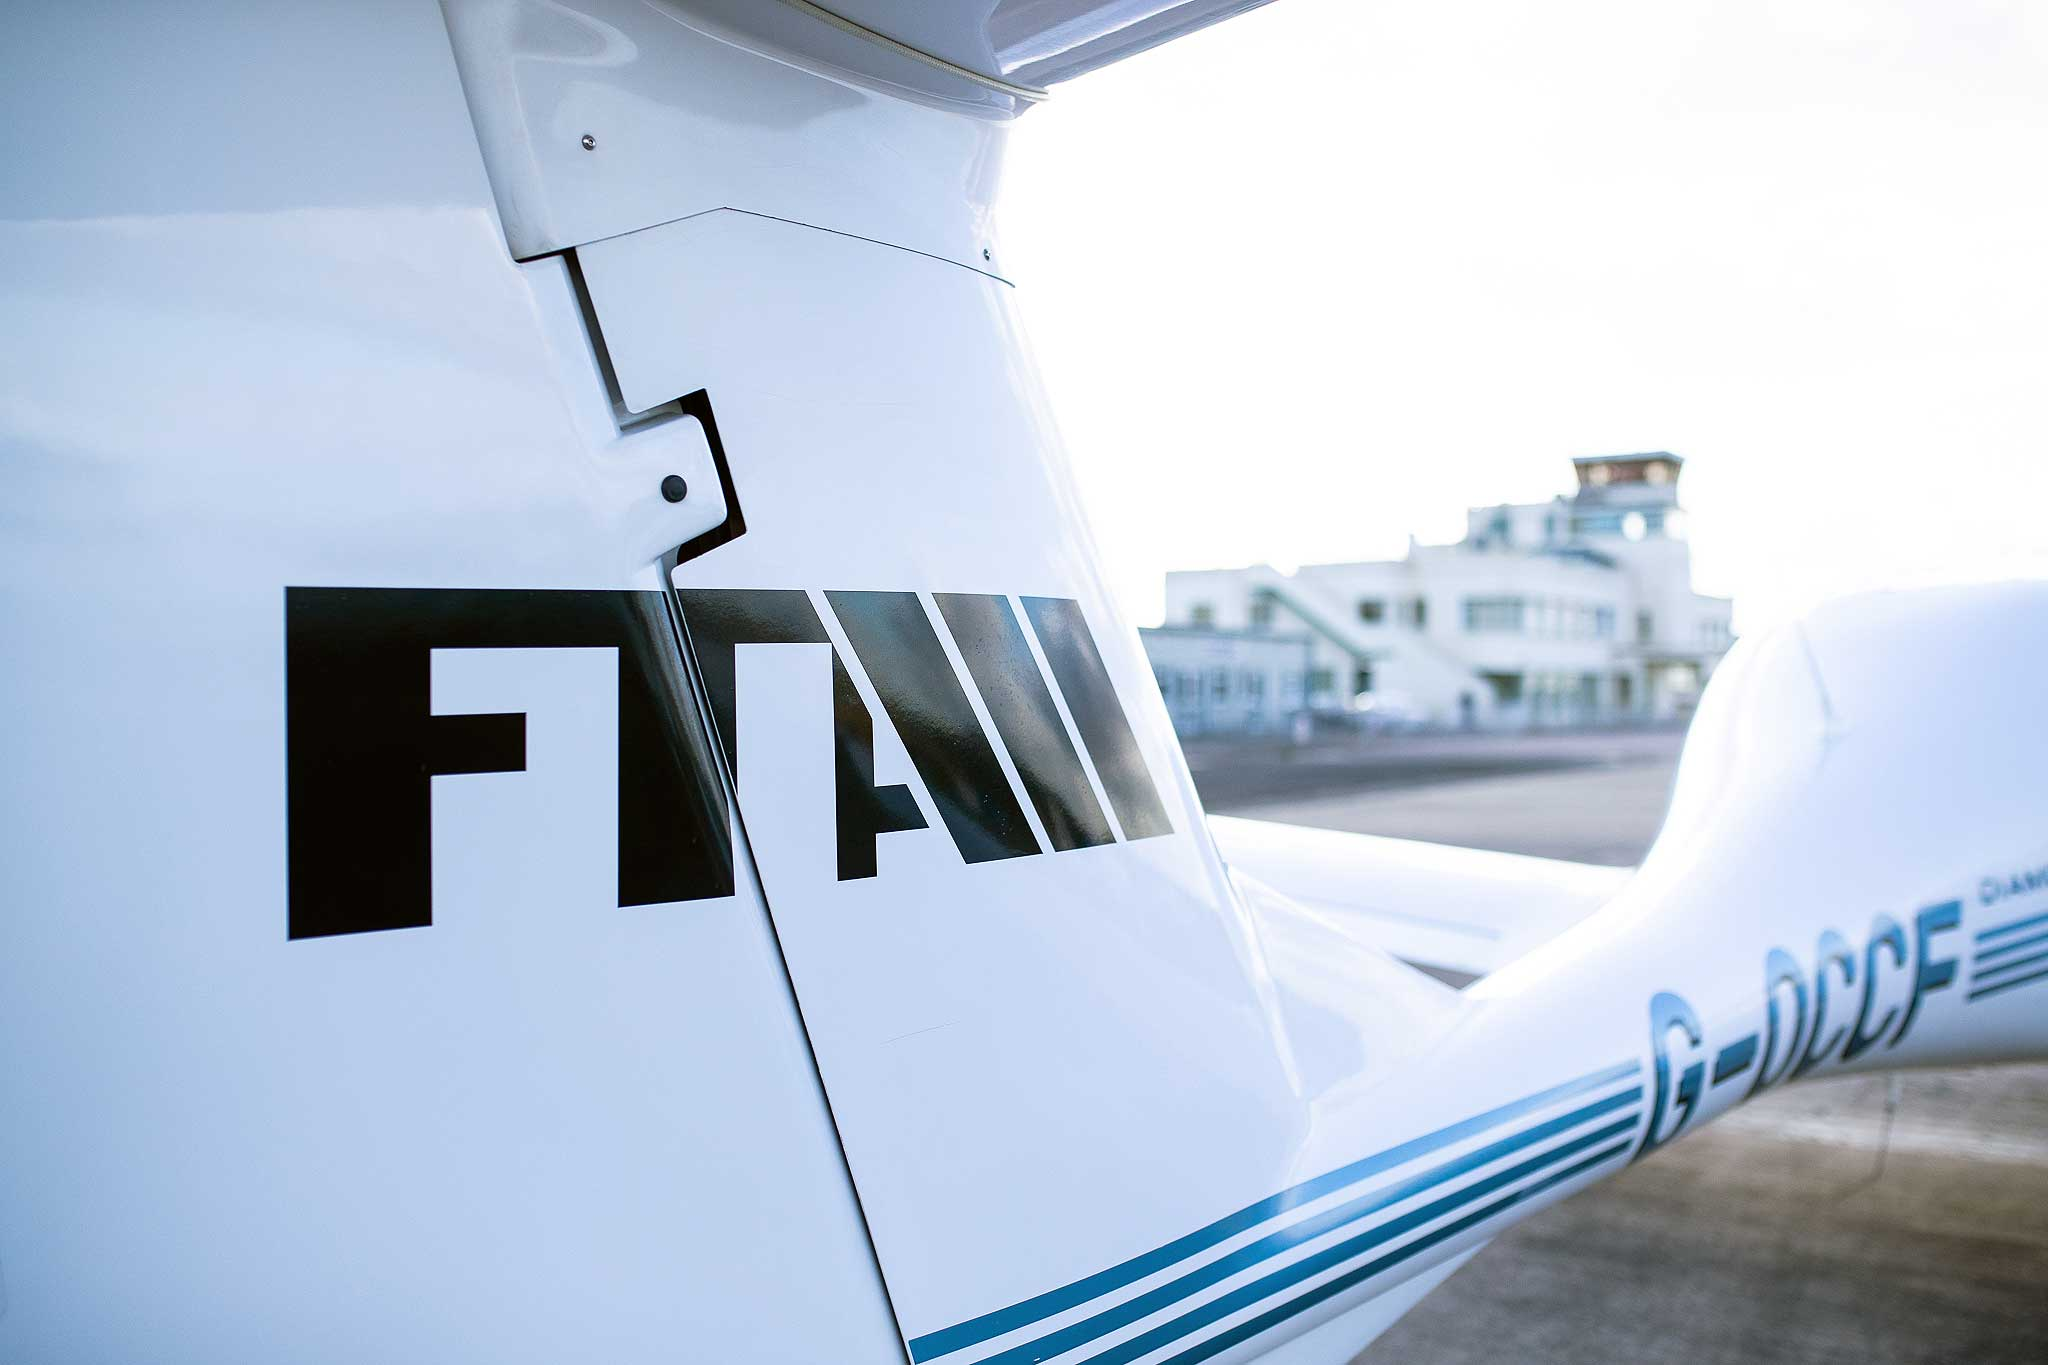 FTA Diamond aircraft